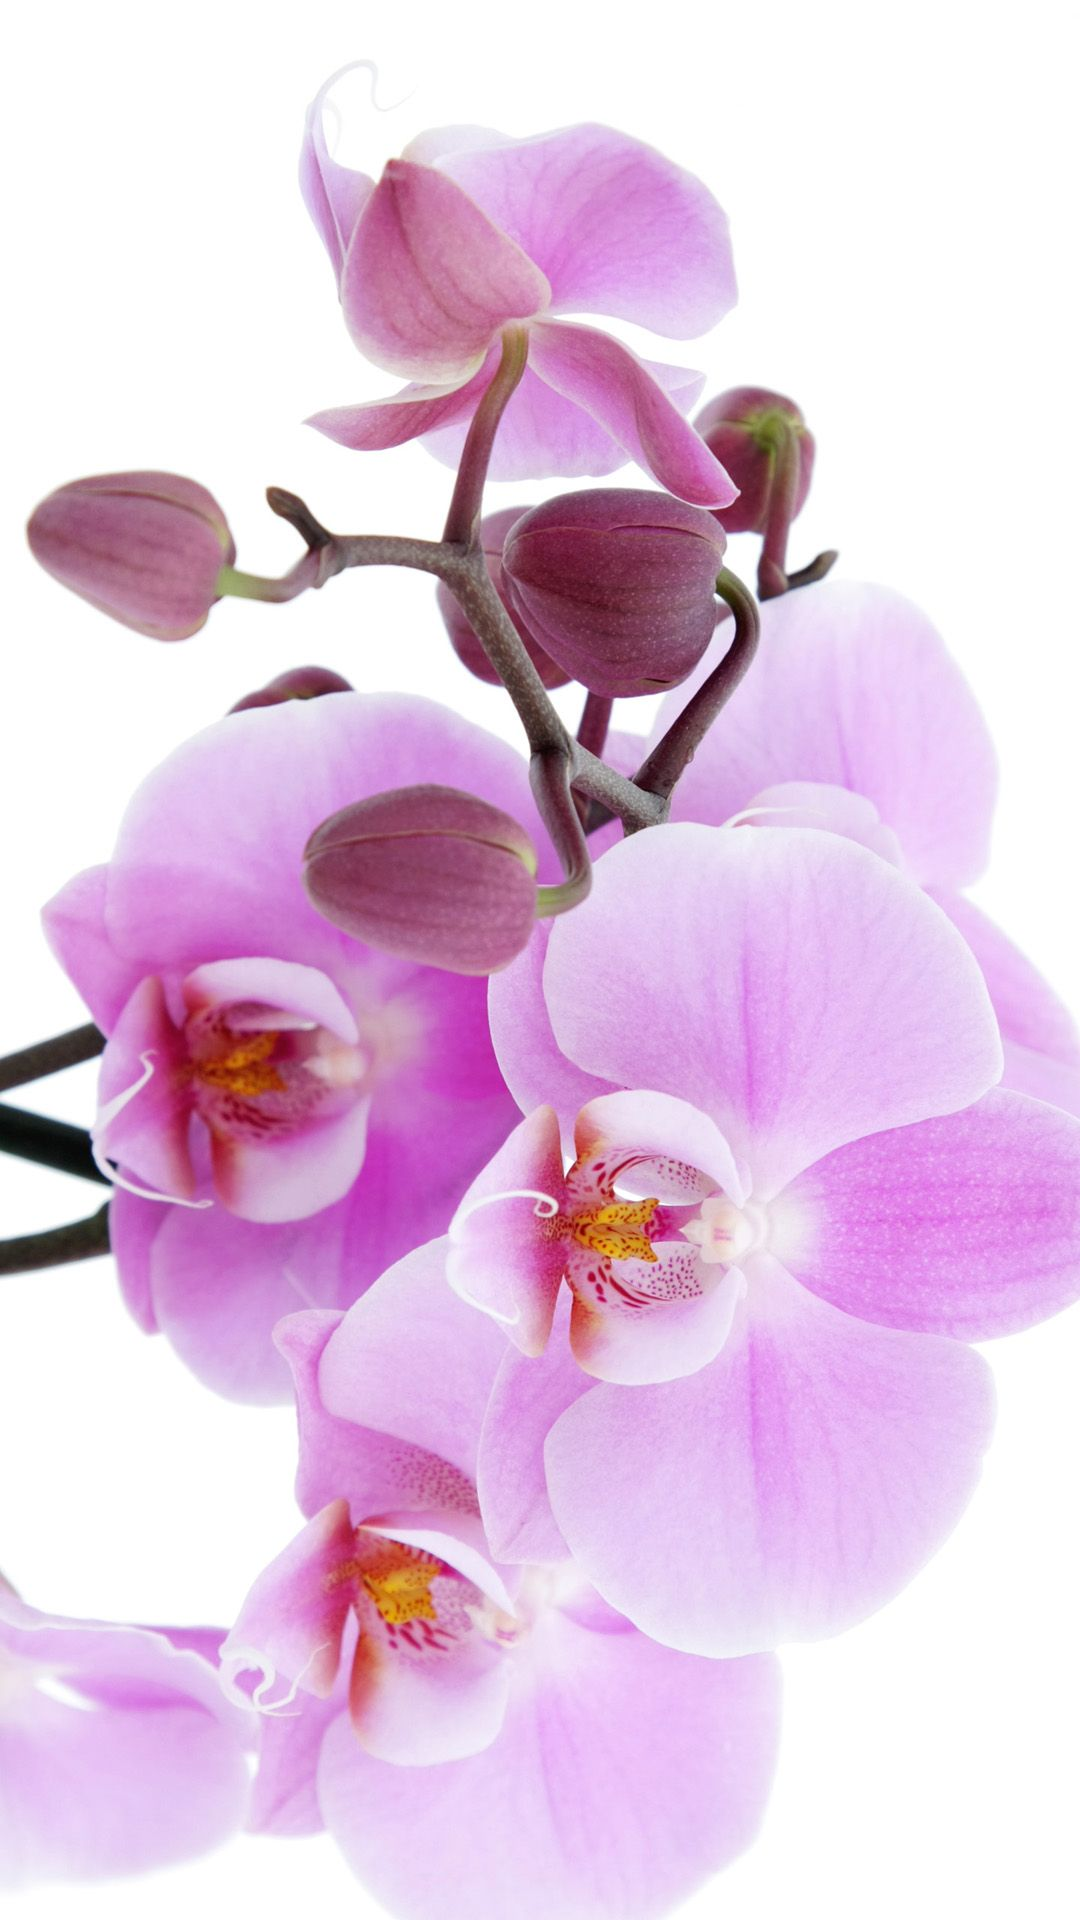 Pure Pink Orchid Iphone 6 Wallpaper Download Iphone Wallpapers Ipad Wallpapers One Stop Download Orchid Wallpaper Virtual Flowers Flower Wallpaper